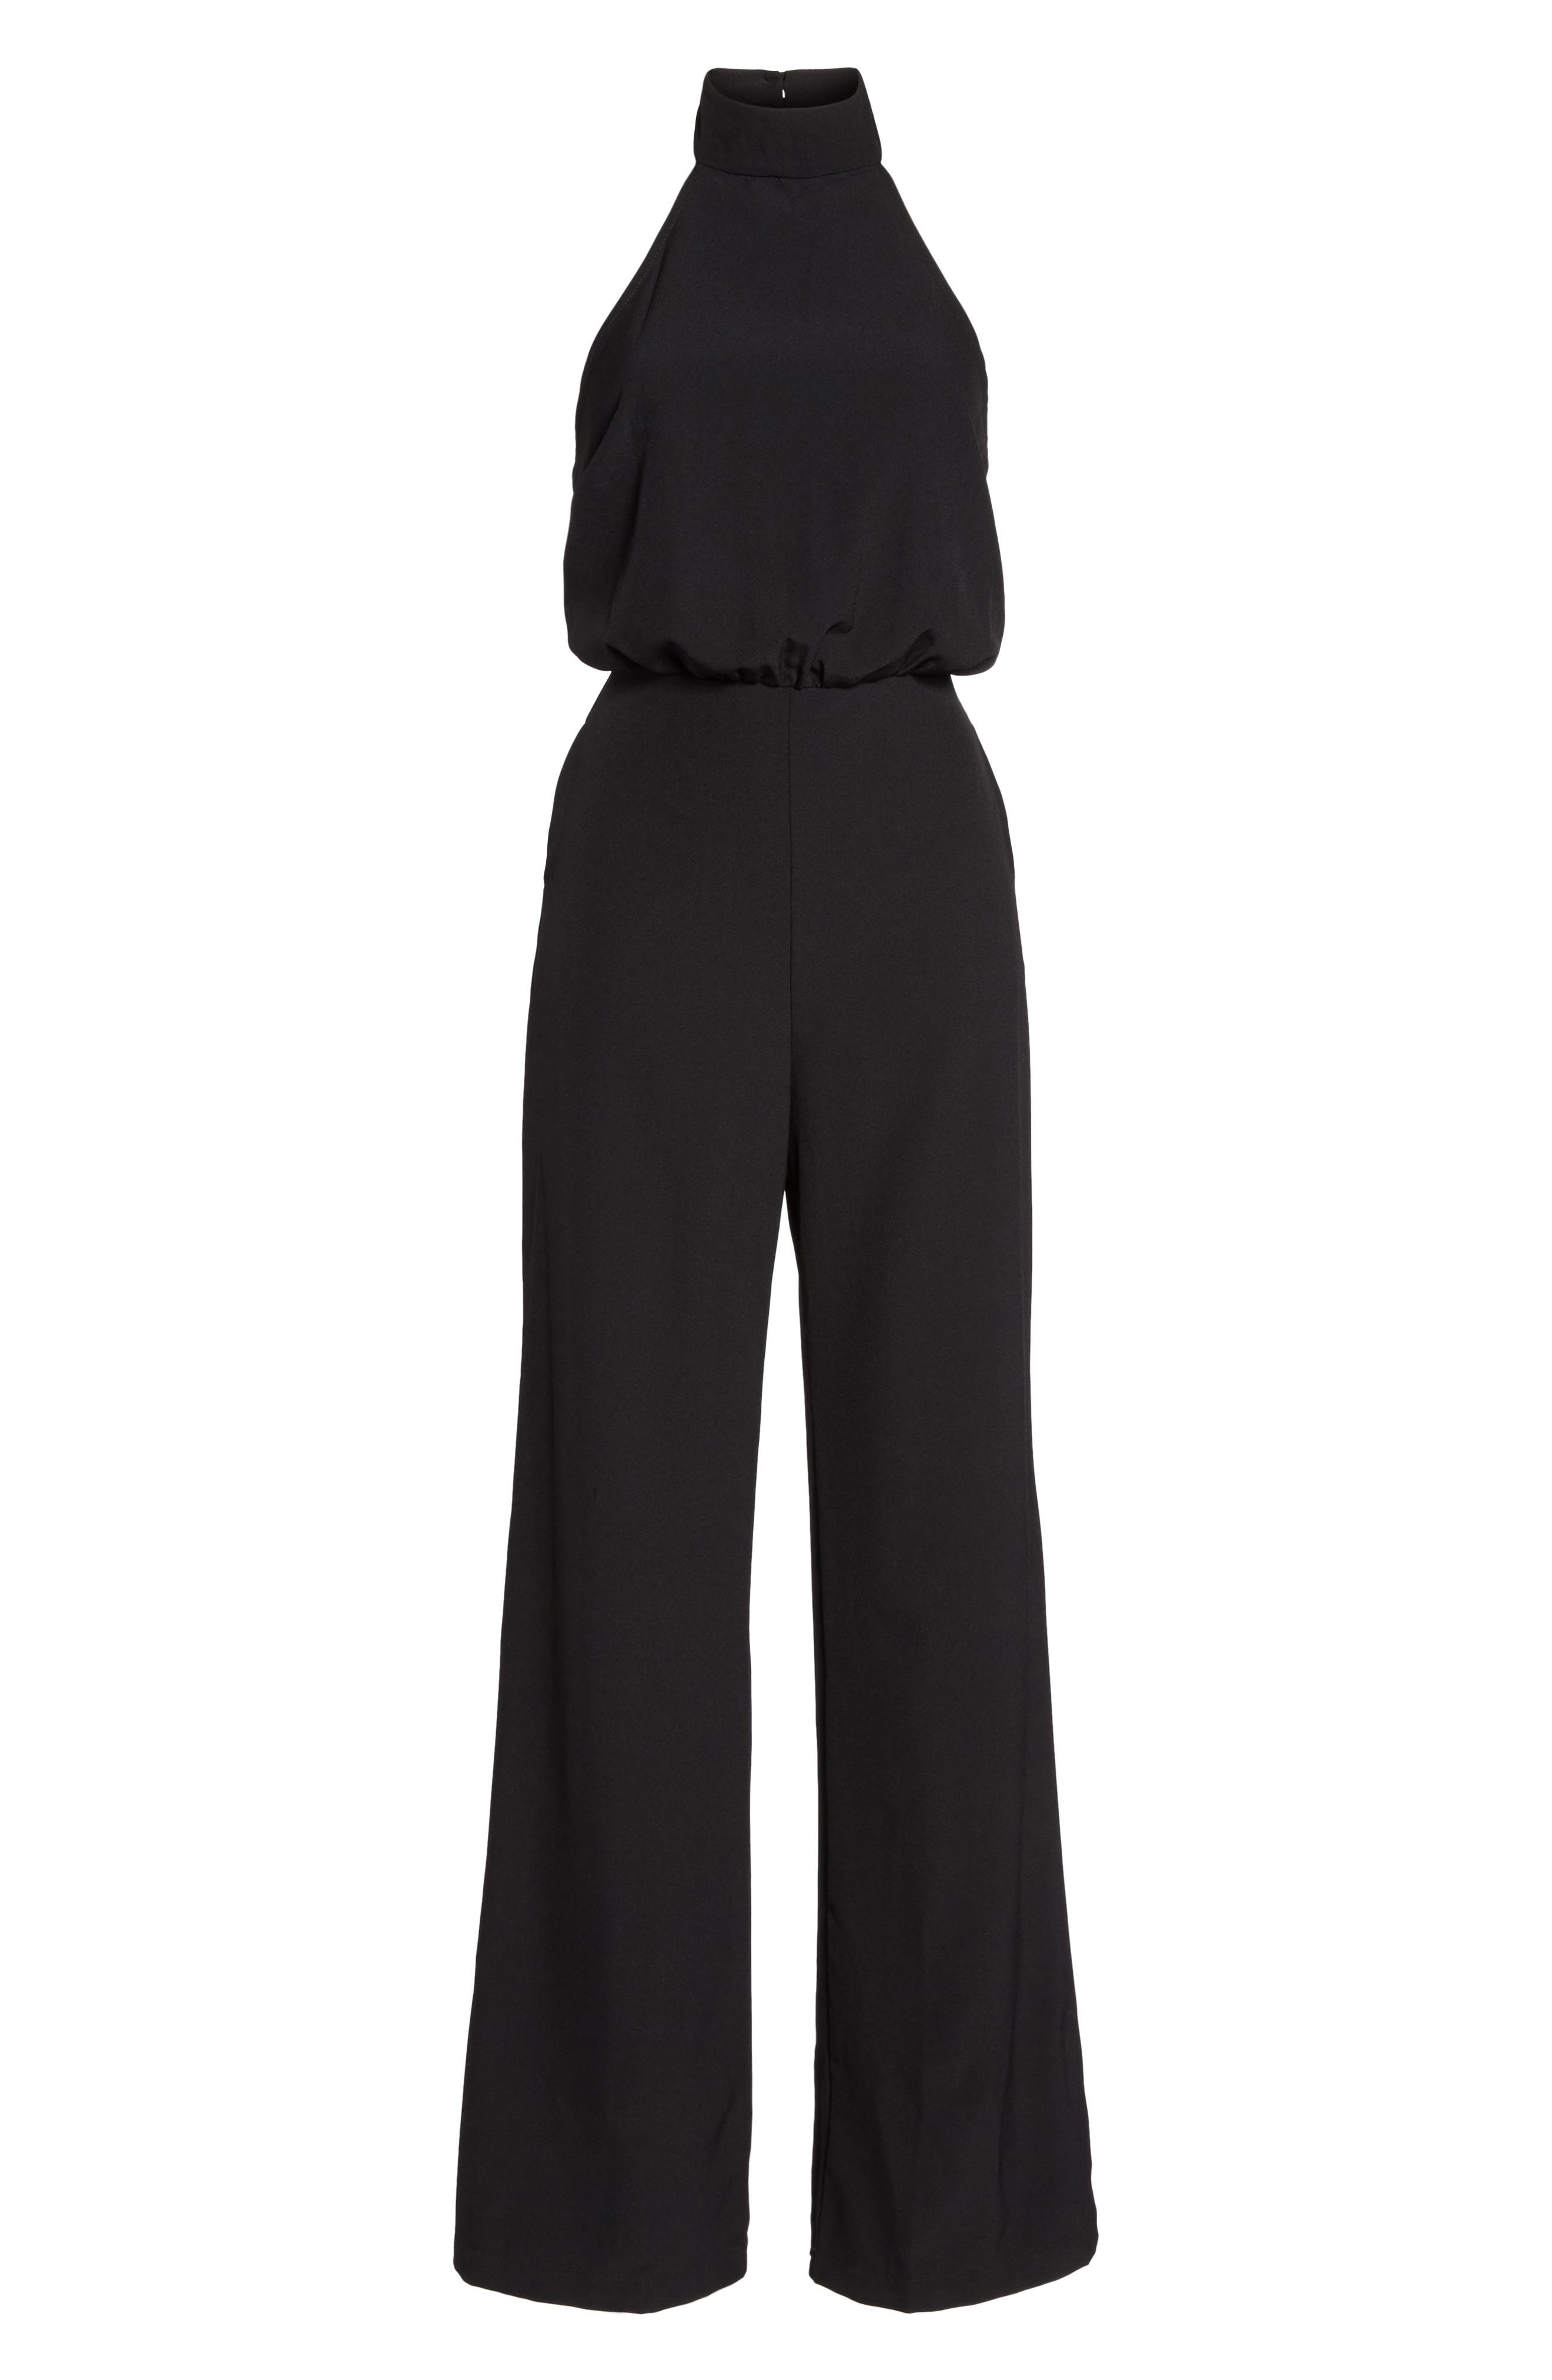 Moment for Life Halter Jumpsuit,                             Alternate thumbnail 6, color,                             BLACK